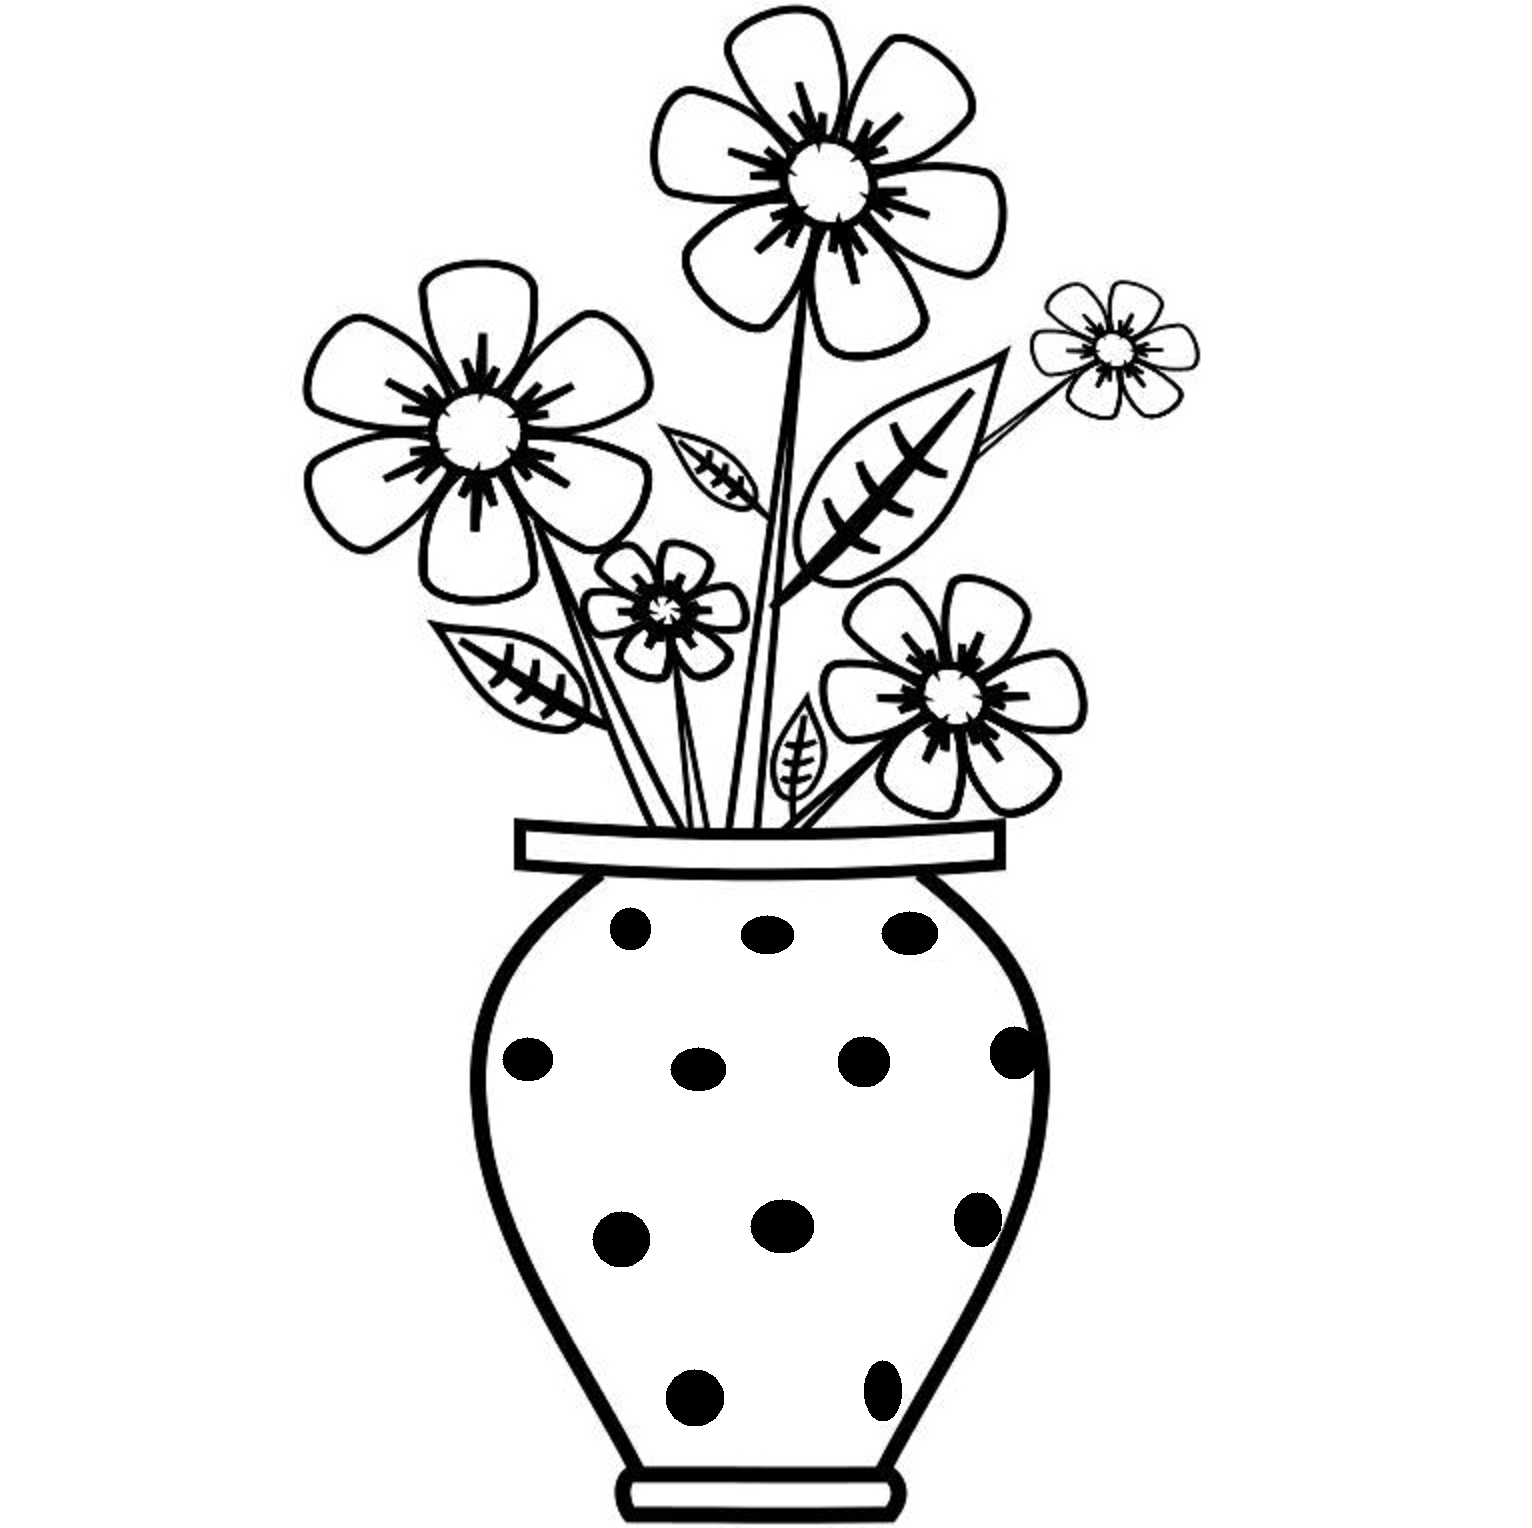 Flower pot images for drawing